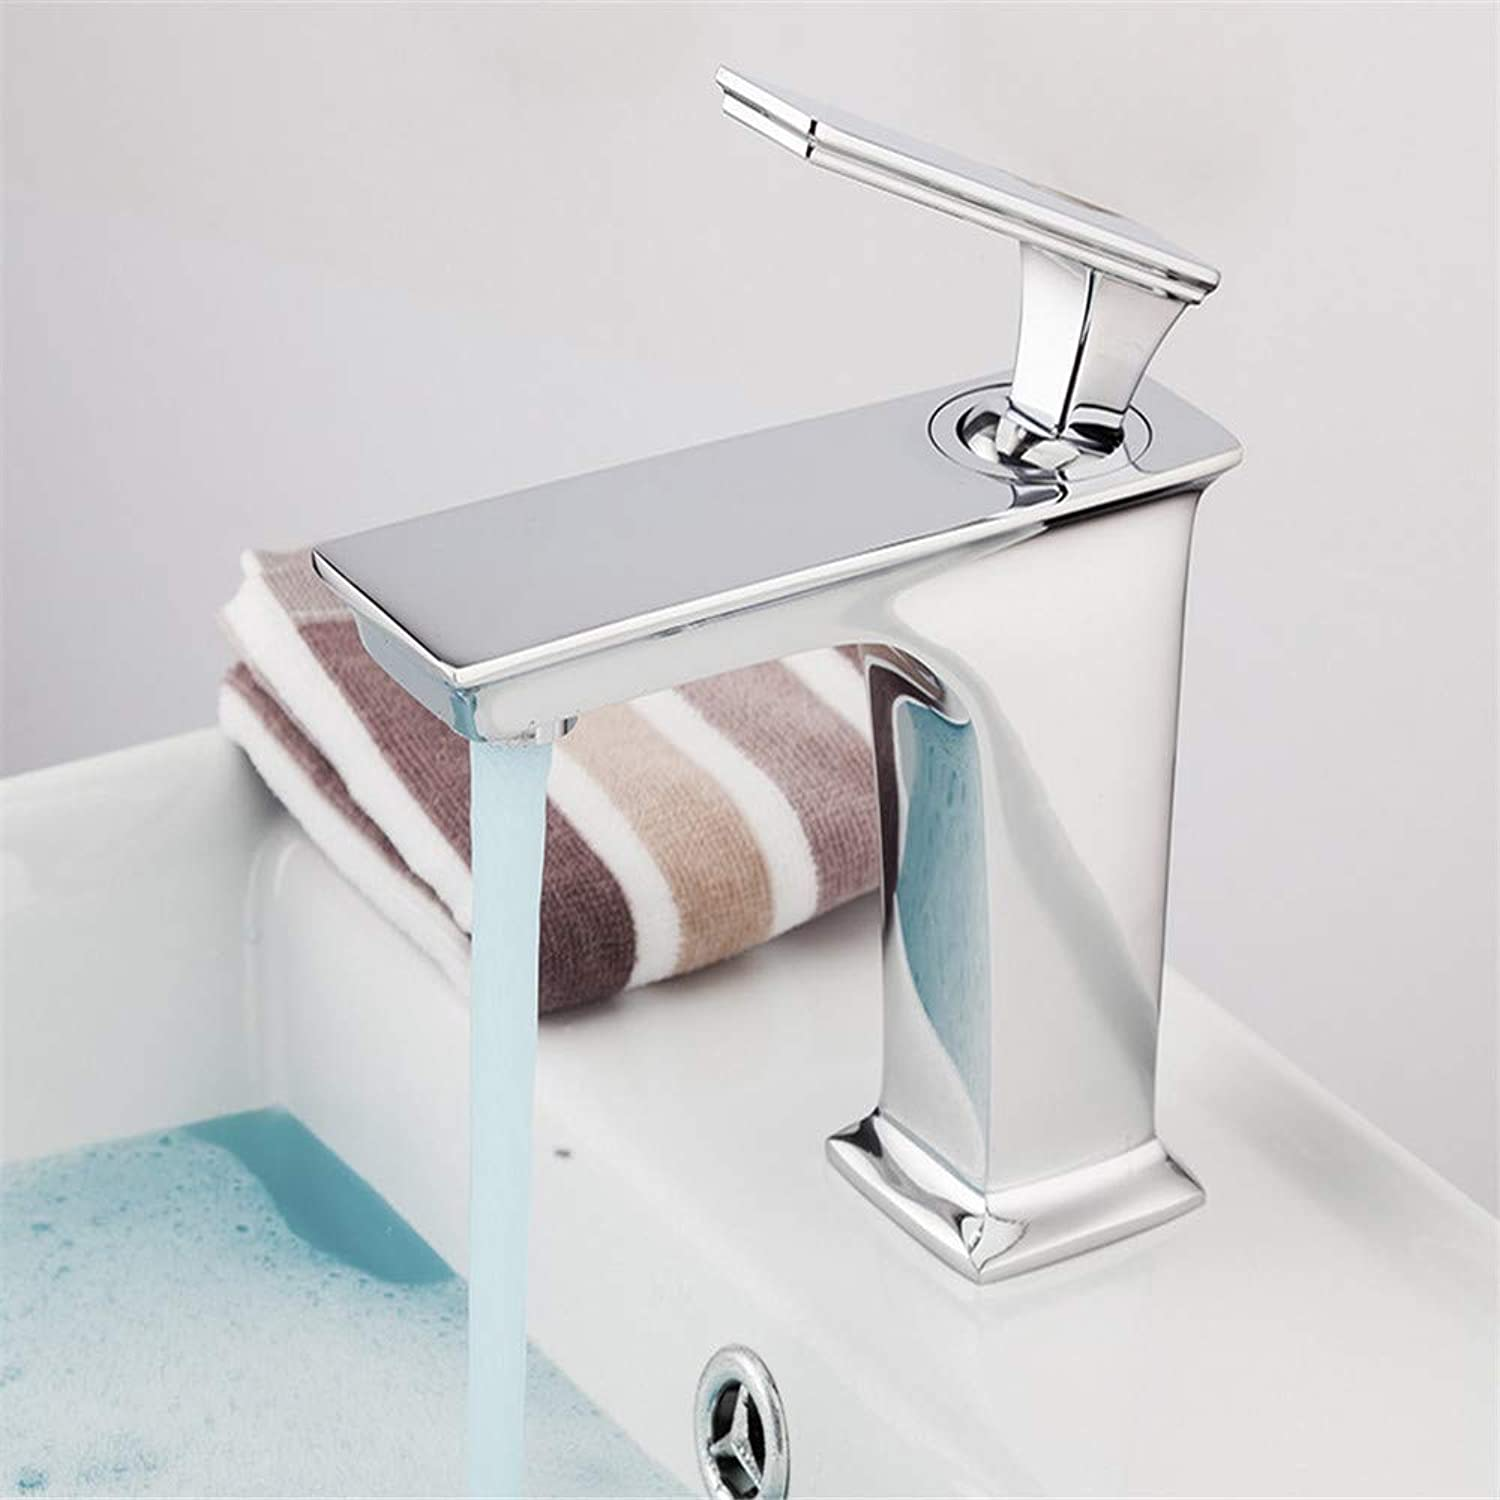 Brass Chrome Modern Faucet Bathroom Taps Waterfall Sink Faucets Deck Mounted Mixer Bath Sink Faucets